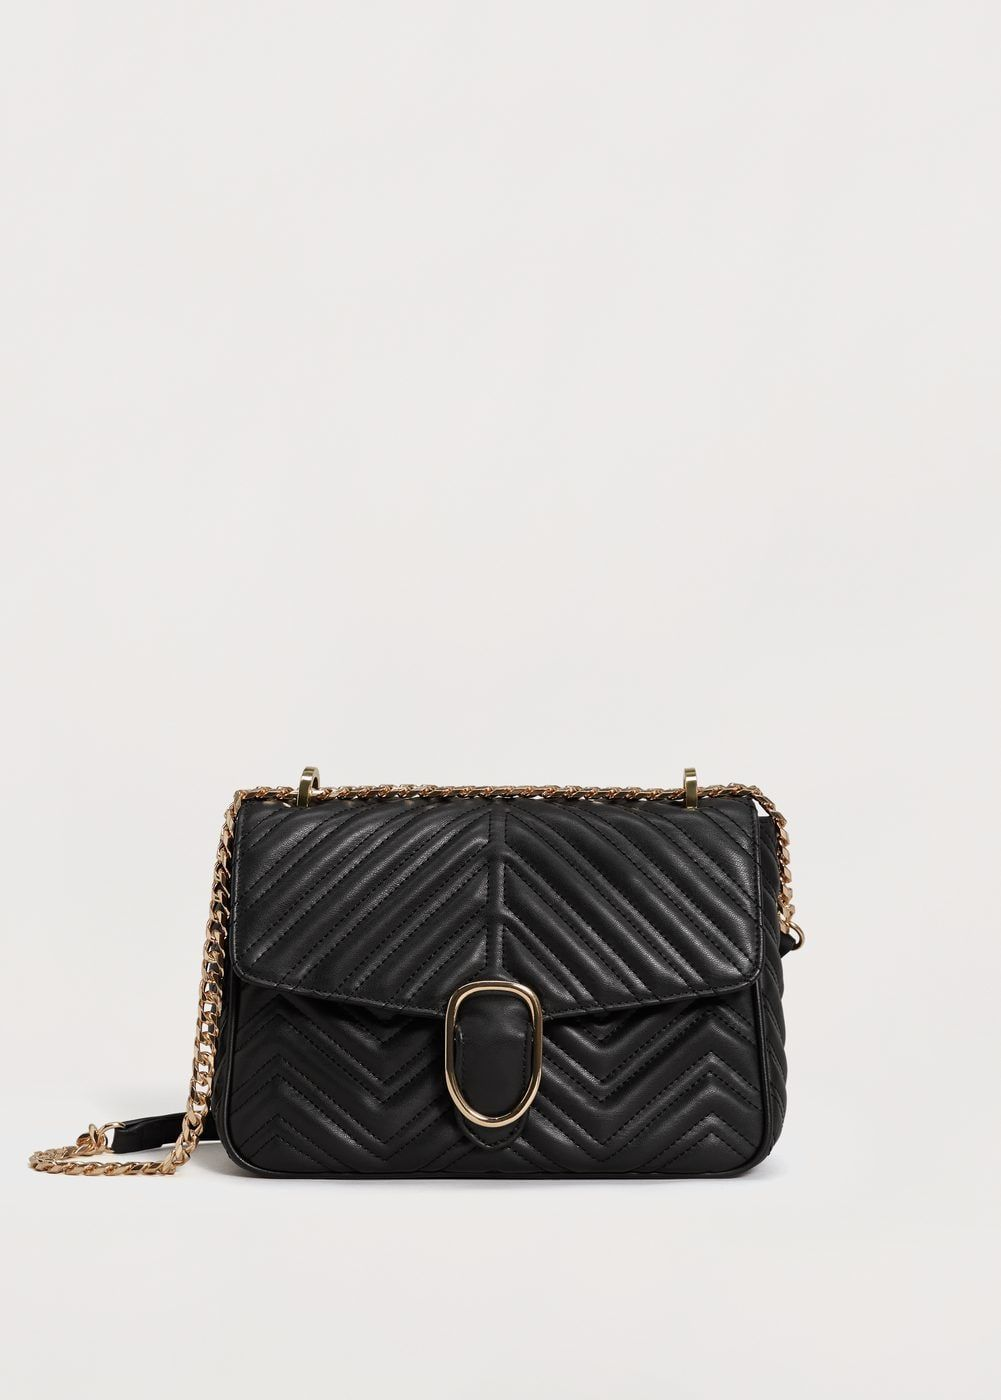 Quilted Chain Bag Plus Sizes Accessories Pinterest Bag